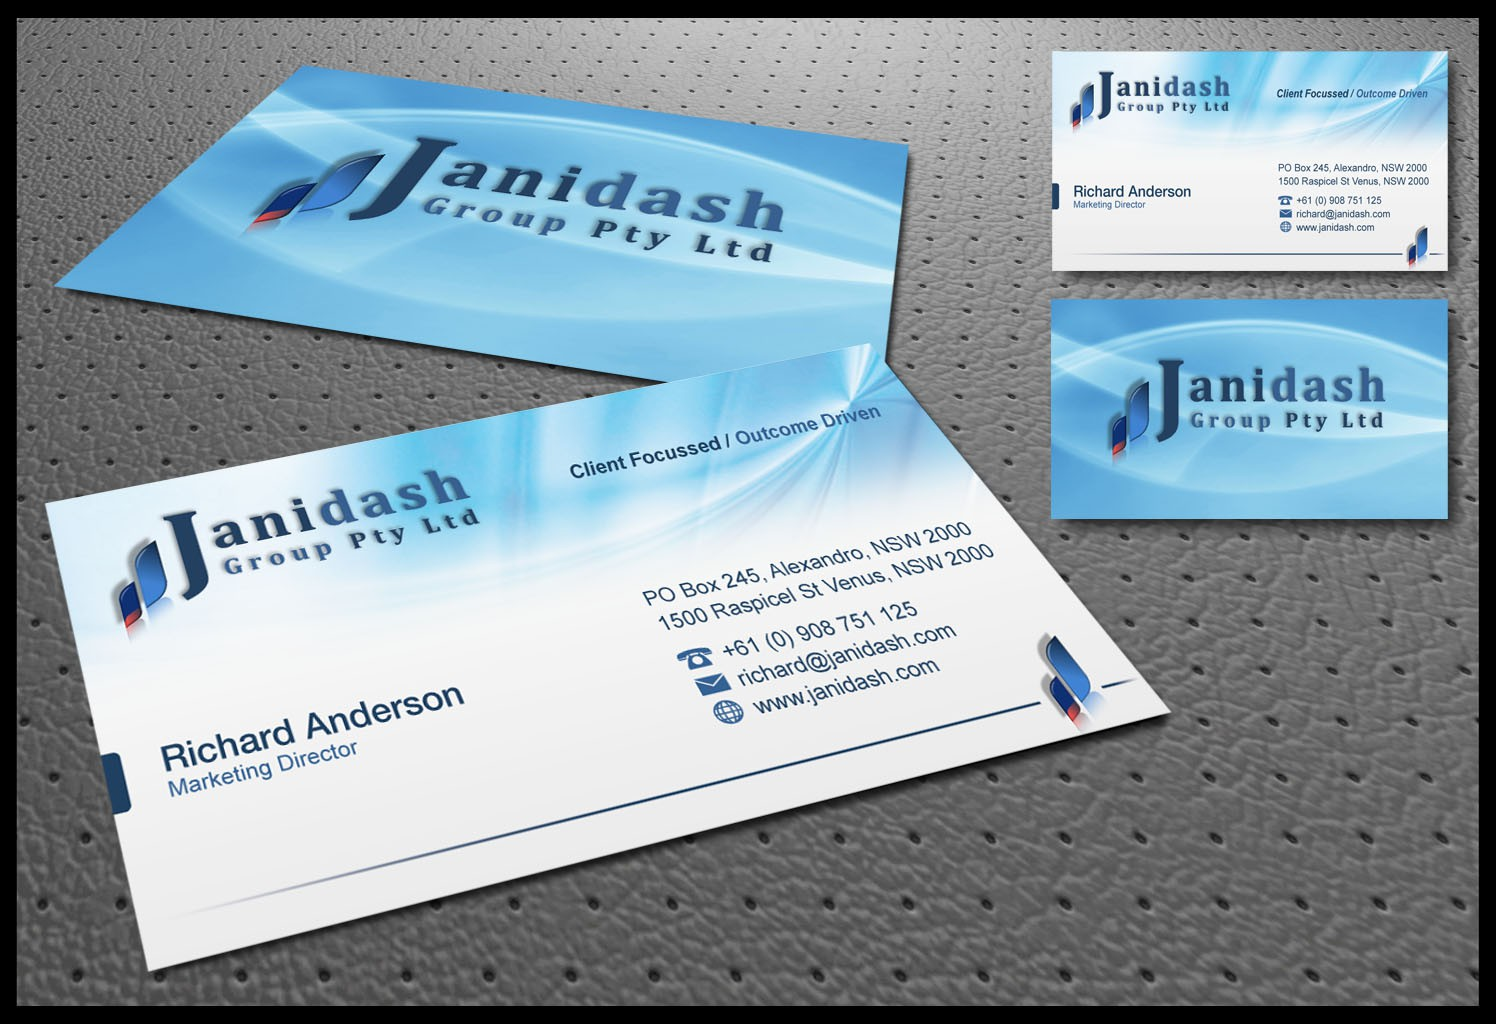 Create the next stationery for Janidash Group Pty Ltd